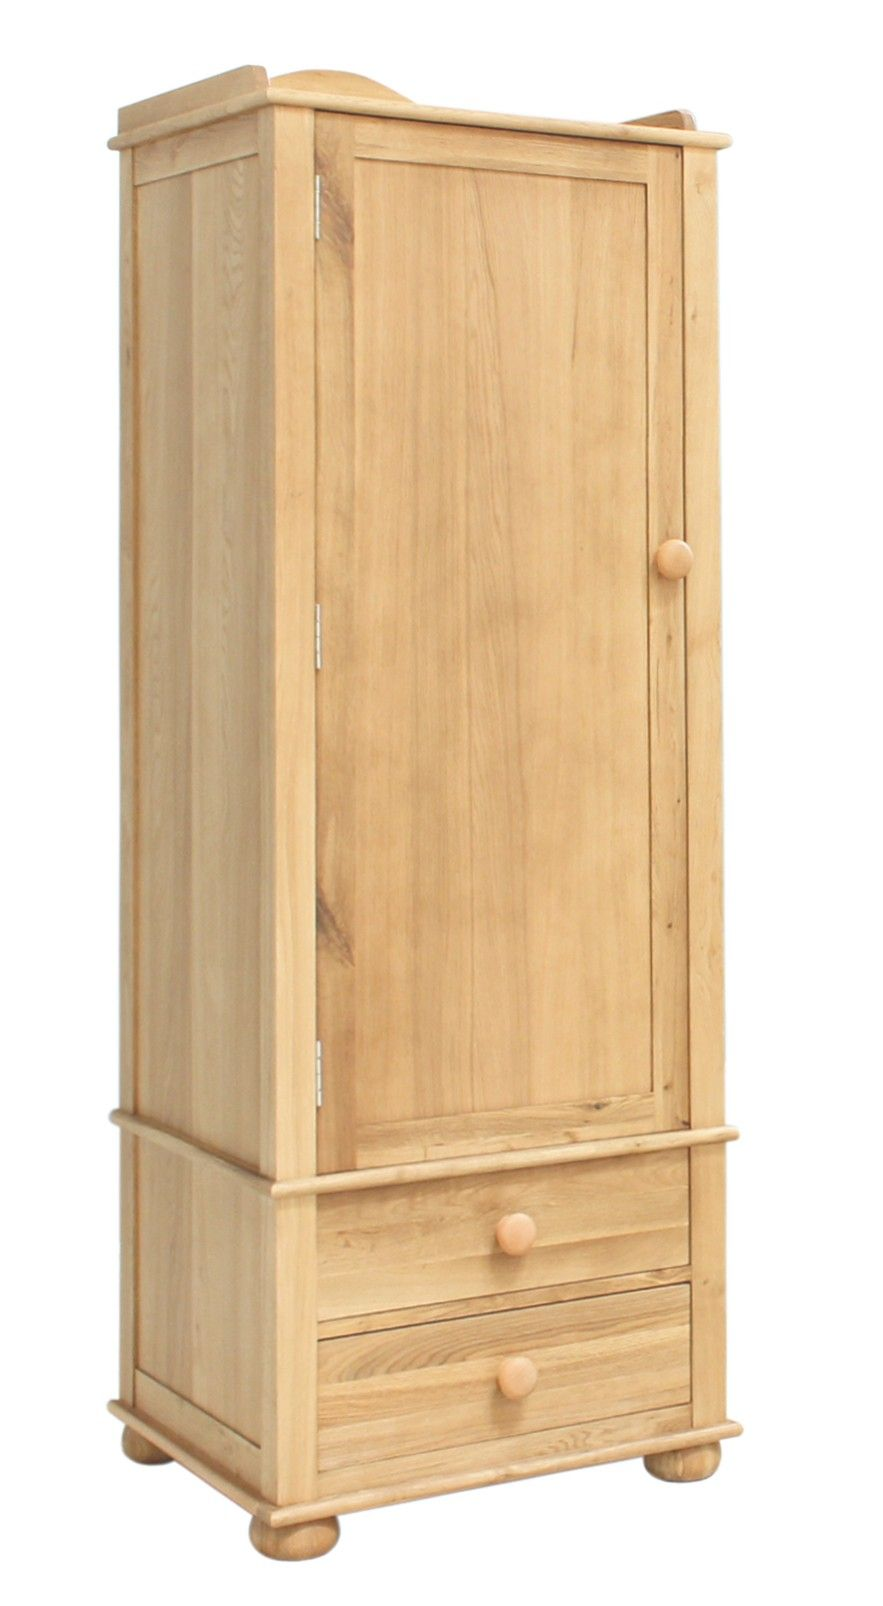 The dimension of this Emily Solid Oak Childrens Single Wardrobe are as follows - the height is 180, the width is 63 the depth is 52 and the volume of this Emily Solid Oak Childrens Single Wardrobe is 0.59. http://www.bonsoni.com/emily-solid-oak-childrens-single-wardrobe